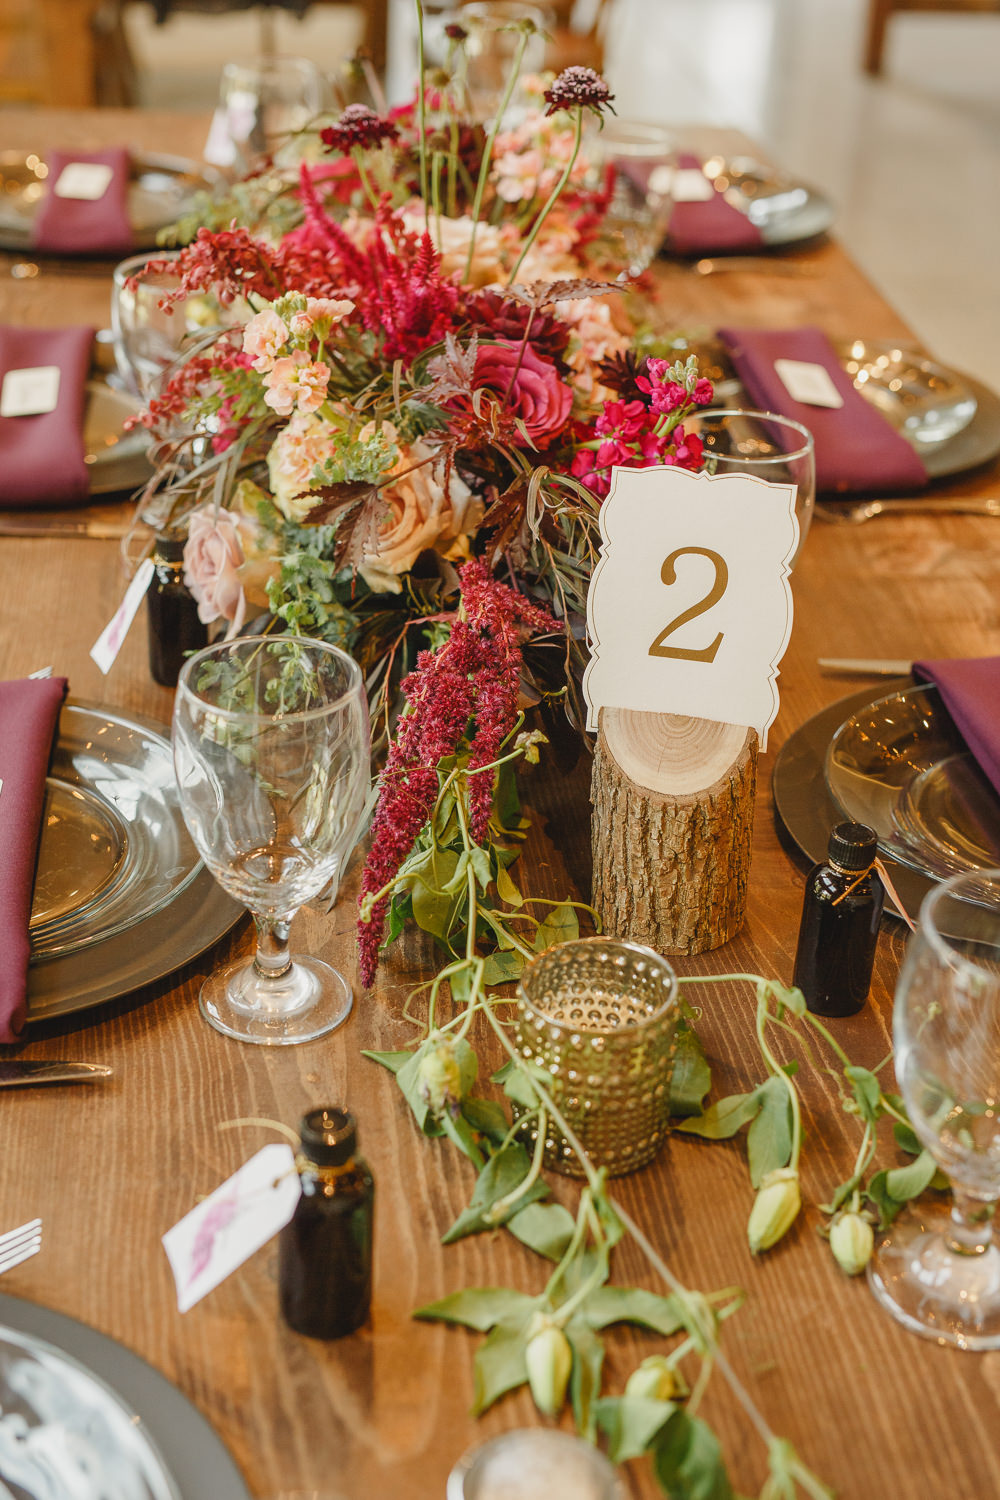 Table Decor Tablescape Flowers Black Plates Red Napkins Candles Log Table Number Enchanted Forest Wedding Kristen Booth Photography